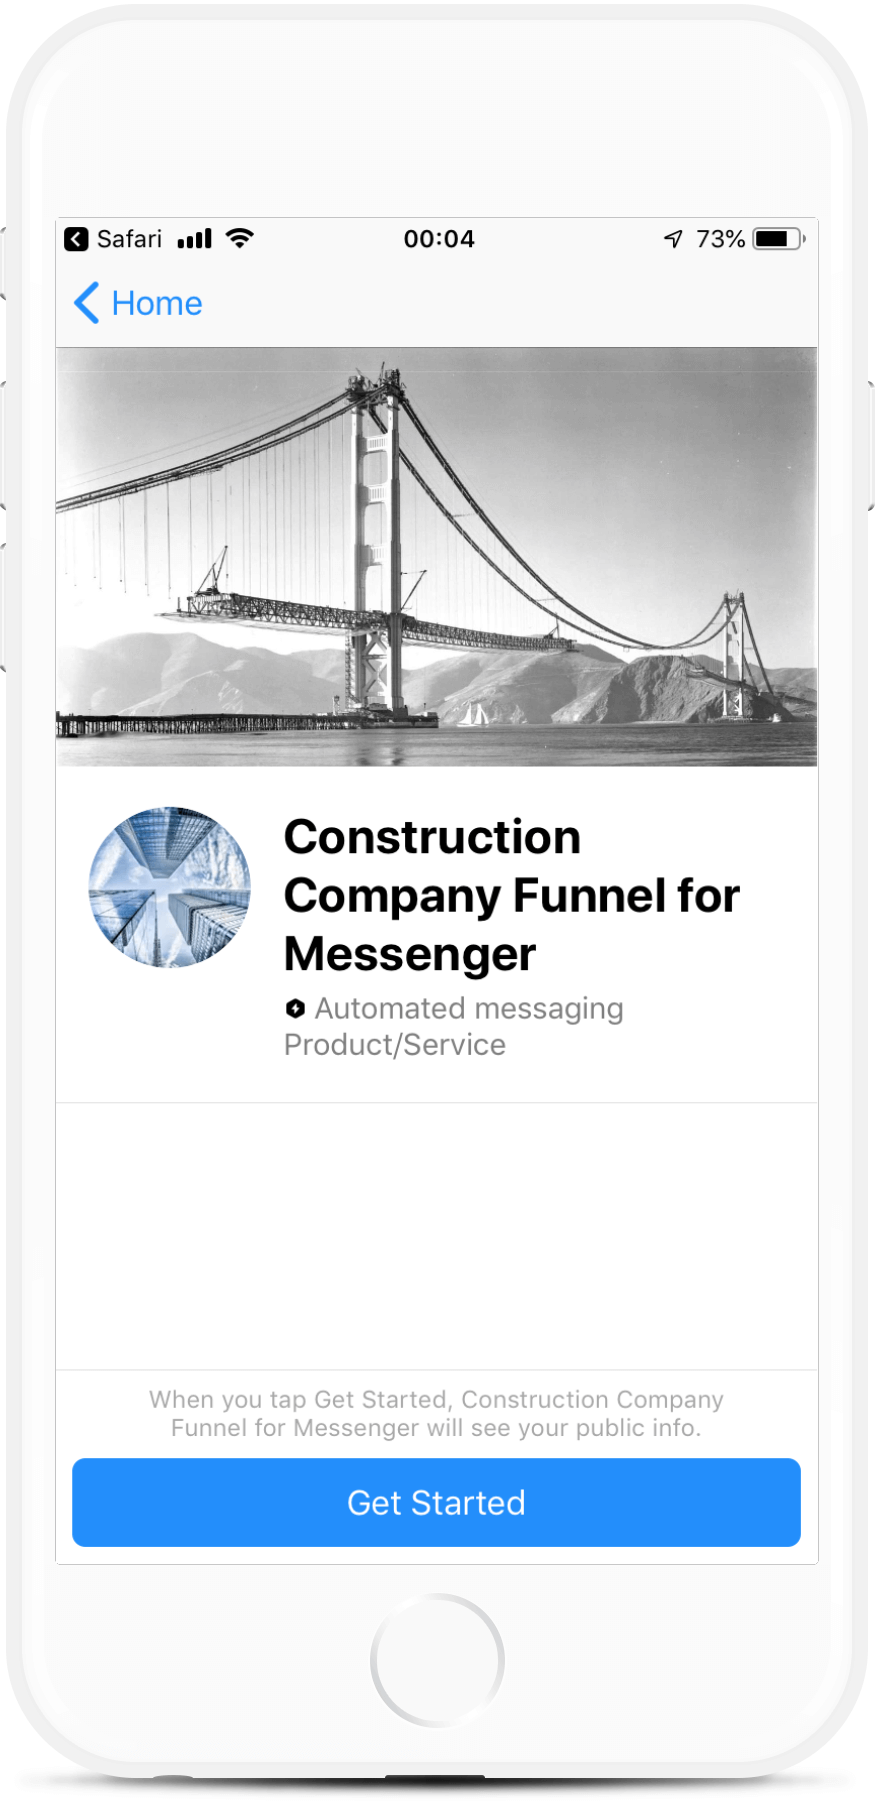 Construction Company Funnel for Messenger